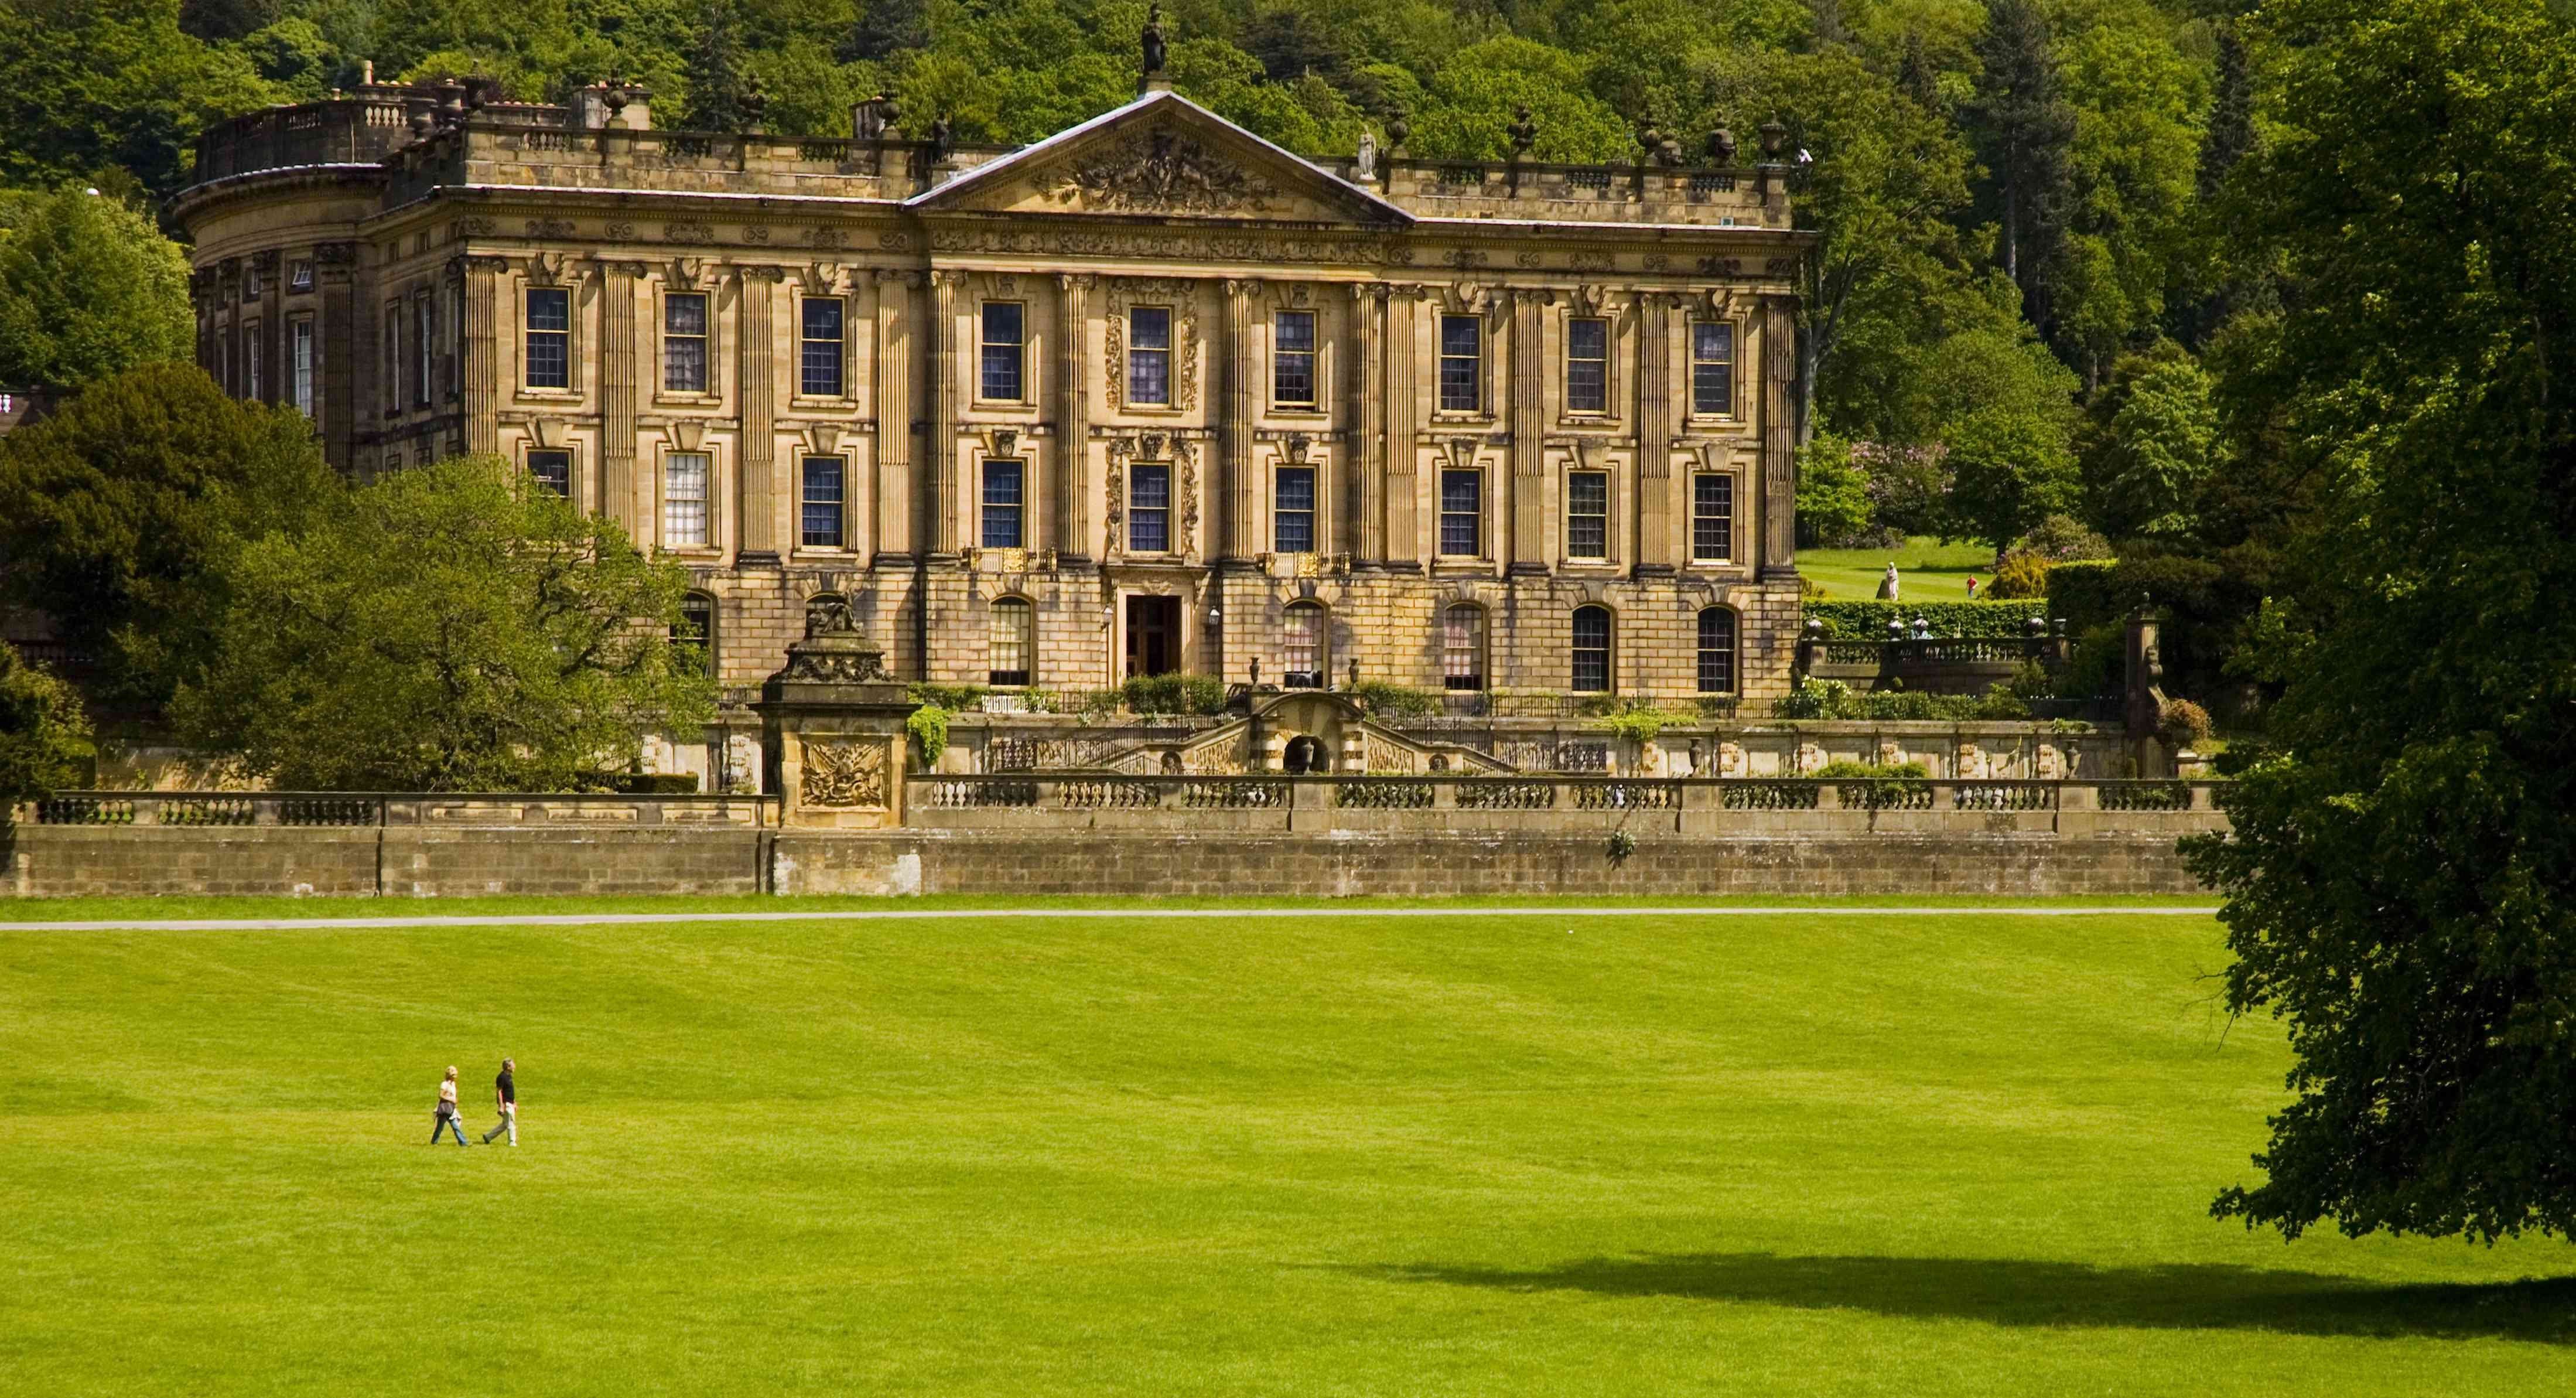 large field in front the aged Chatsworth House with two people walking across the lawn